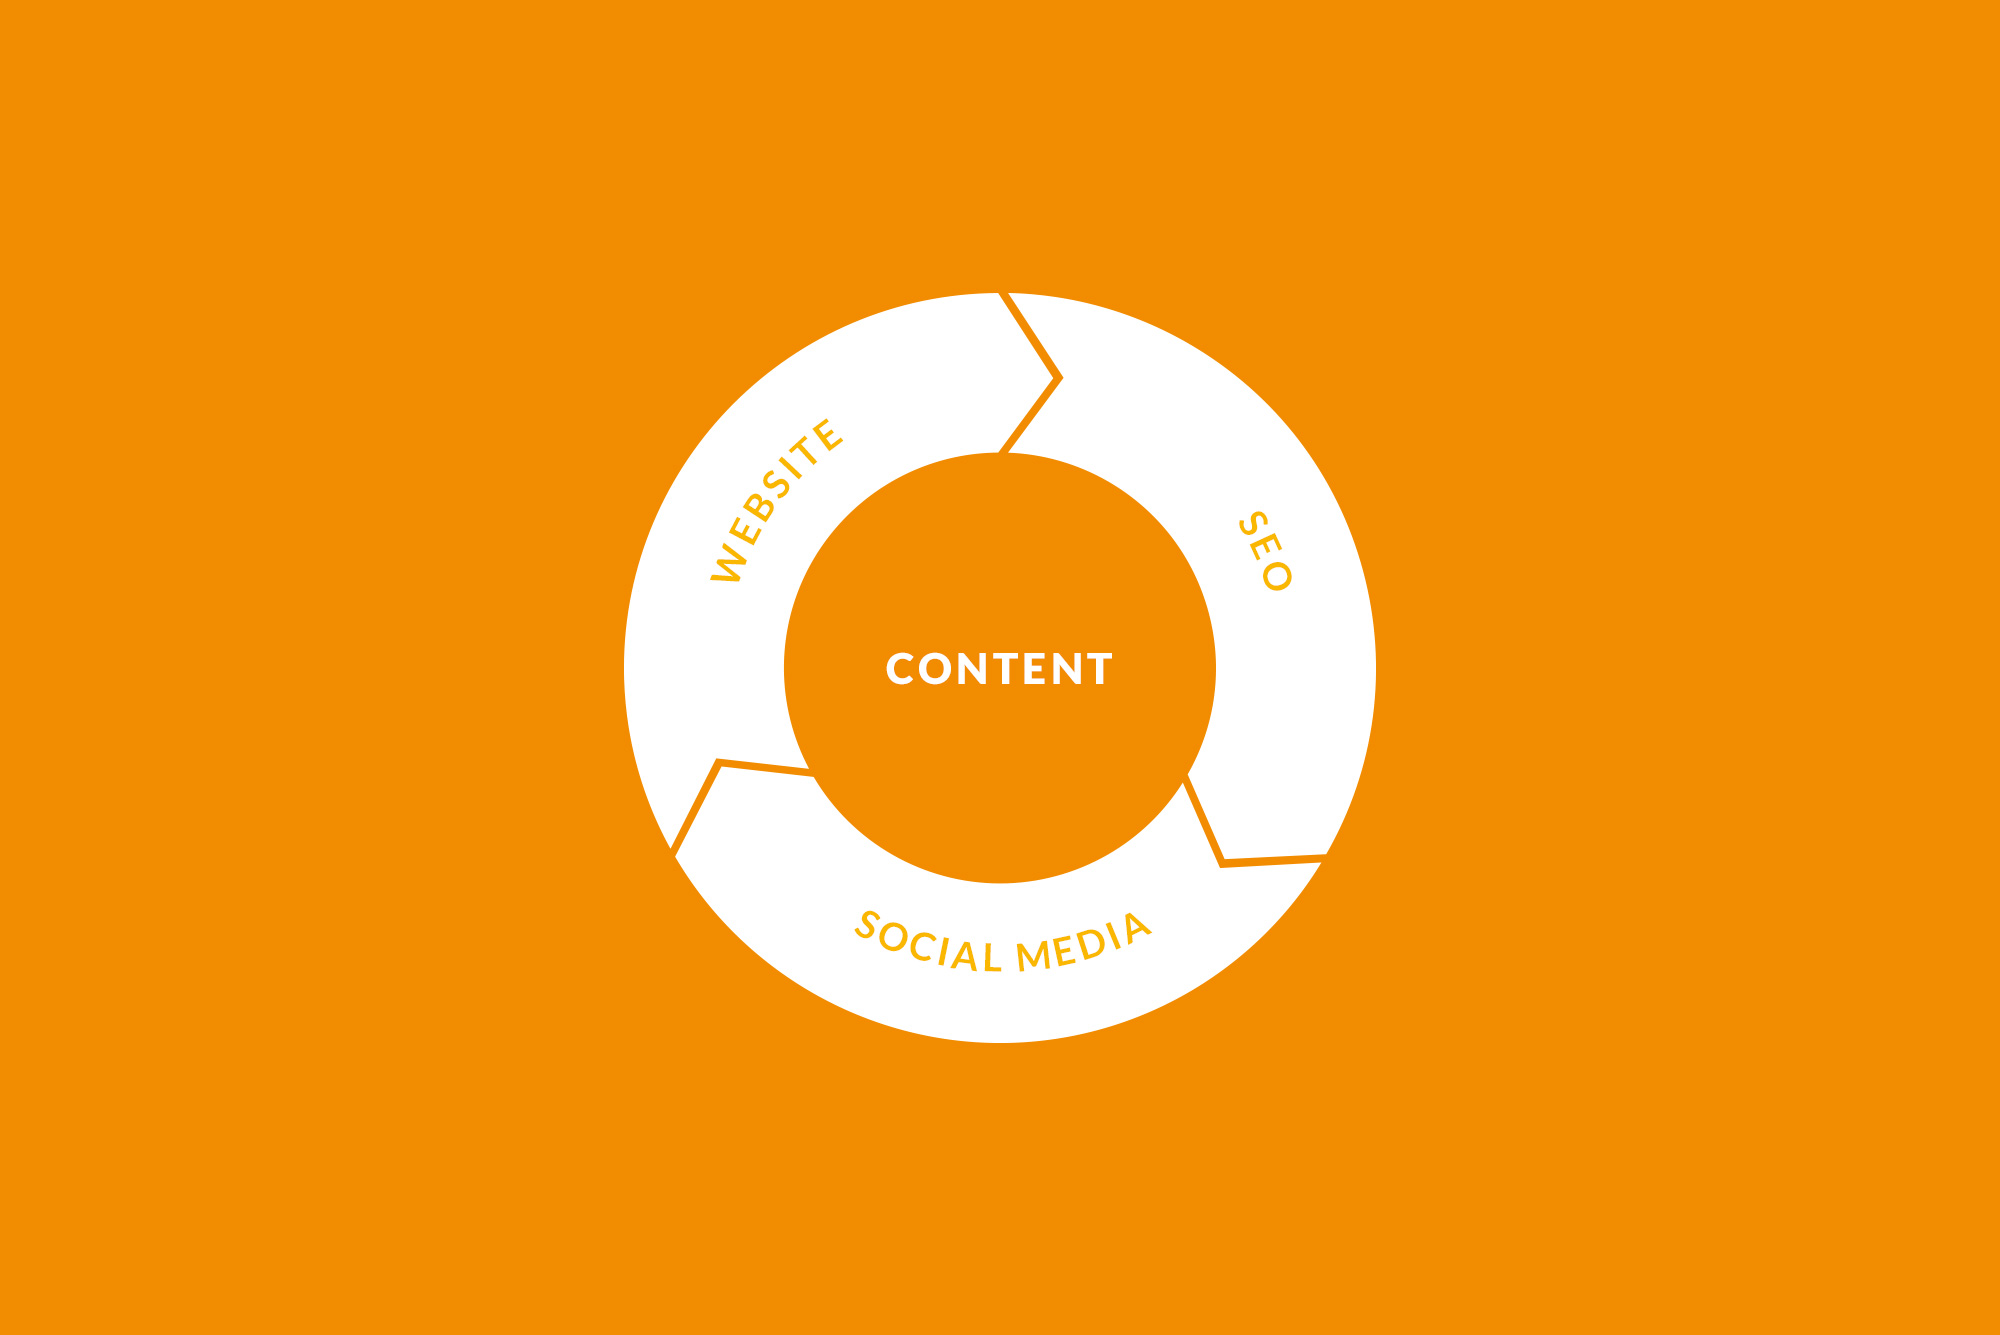 Content wheel on orange background - SEO strategy tips